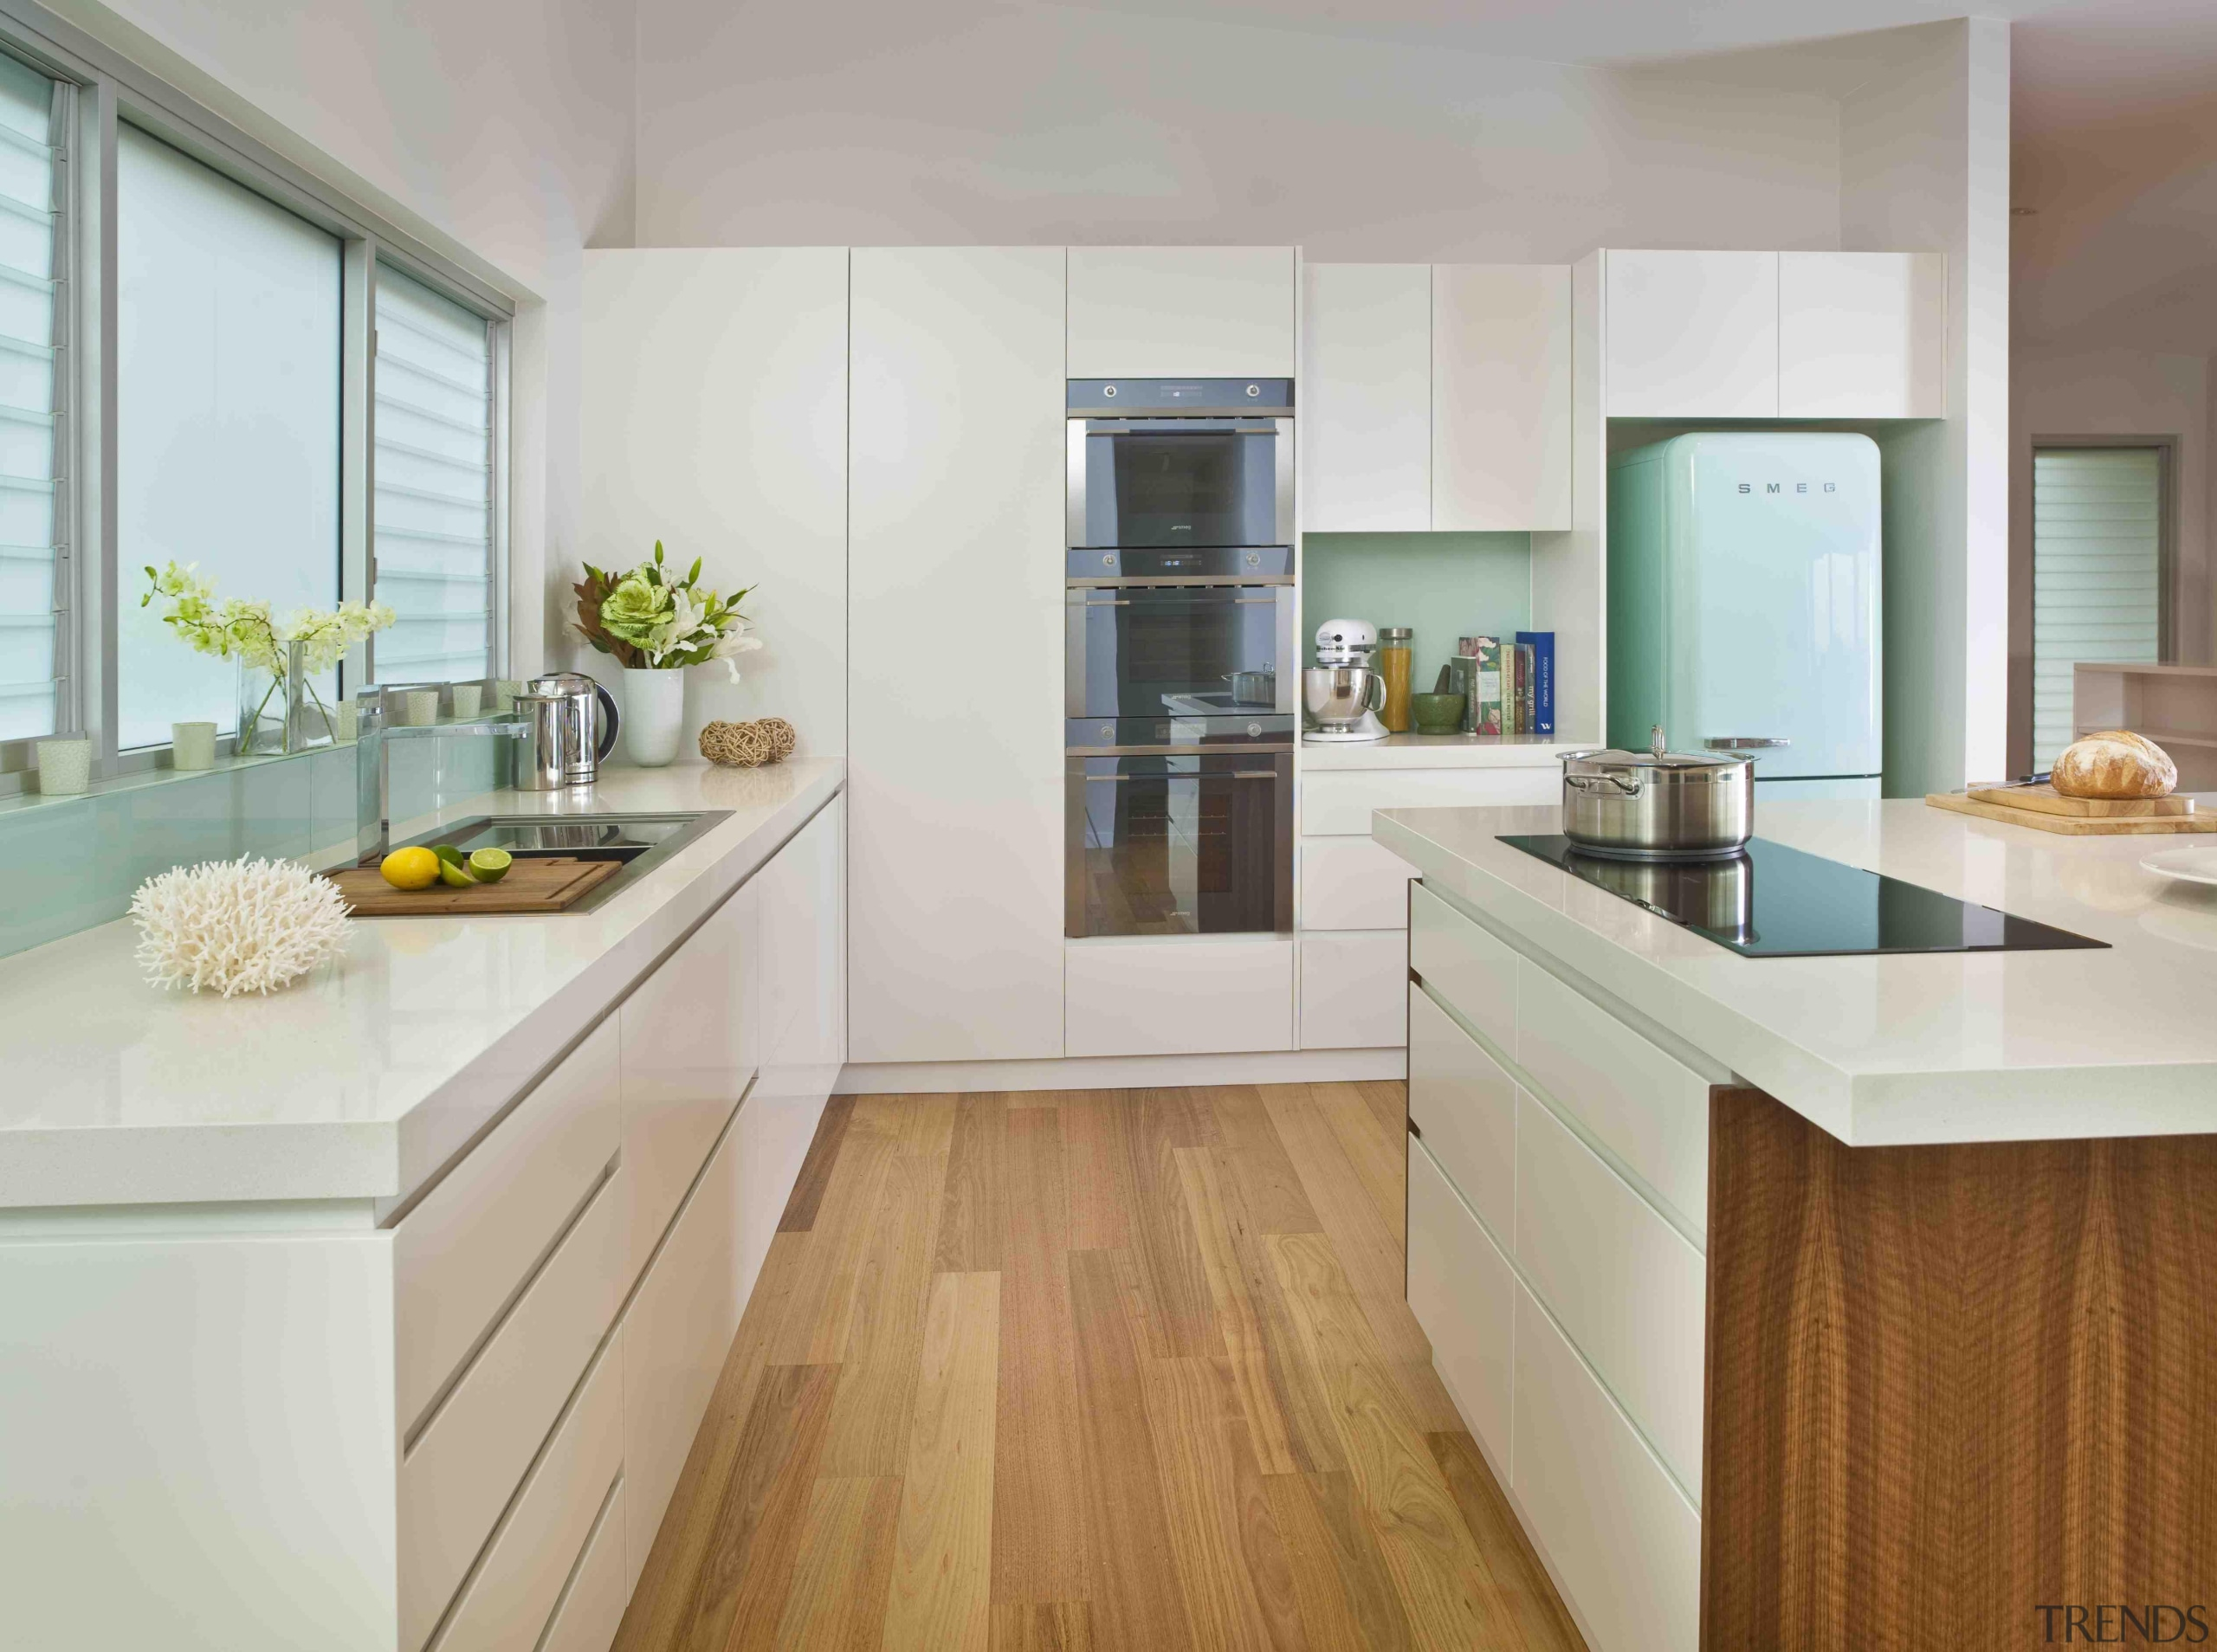 Kitchen inspiration! The Linea range ovens and Fab cabinetry, countertop, cuisine classique, floor, hardwood, interior design, kitchen, real estate, room, gray, white